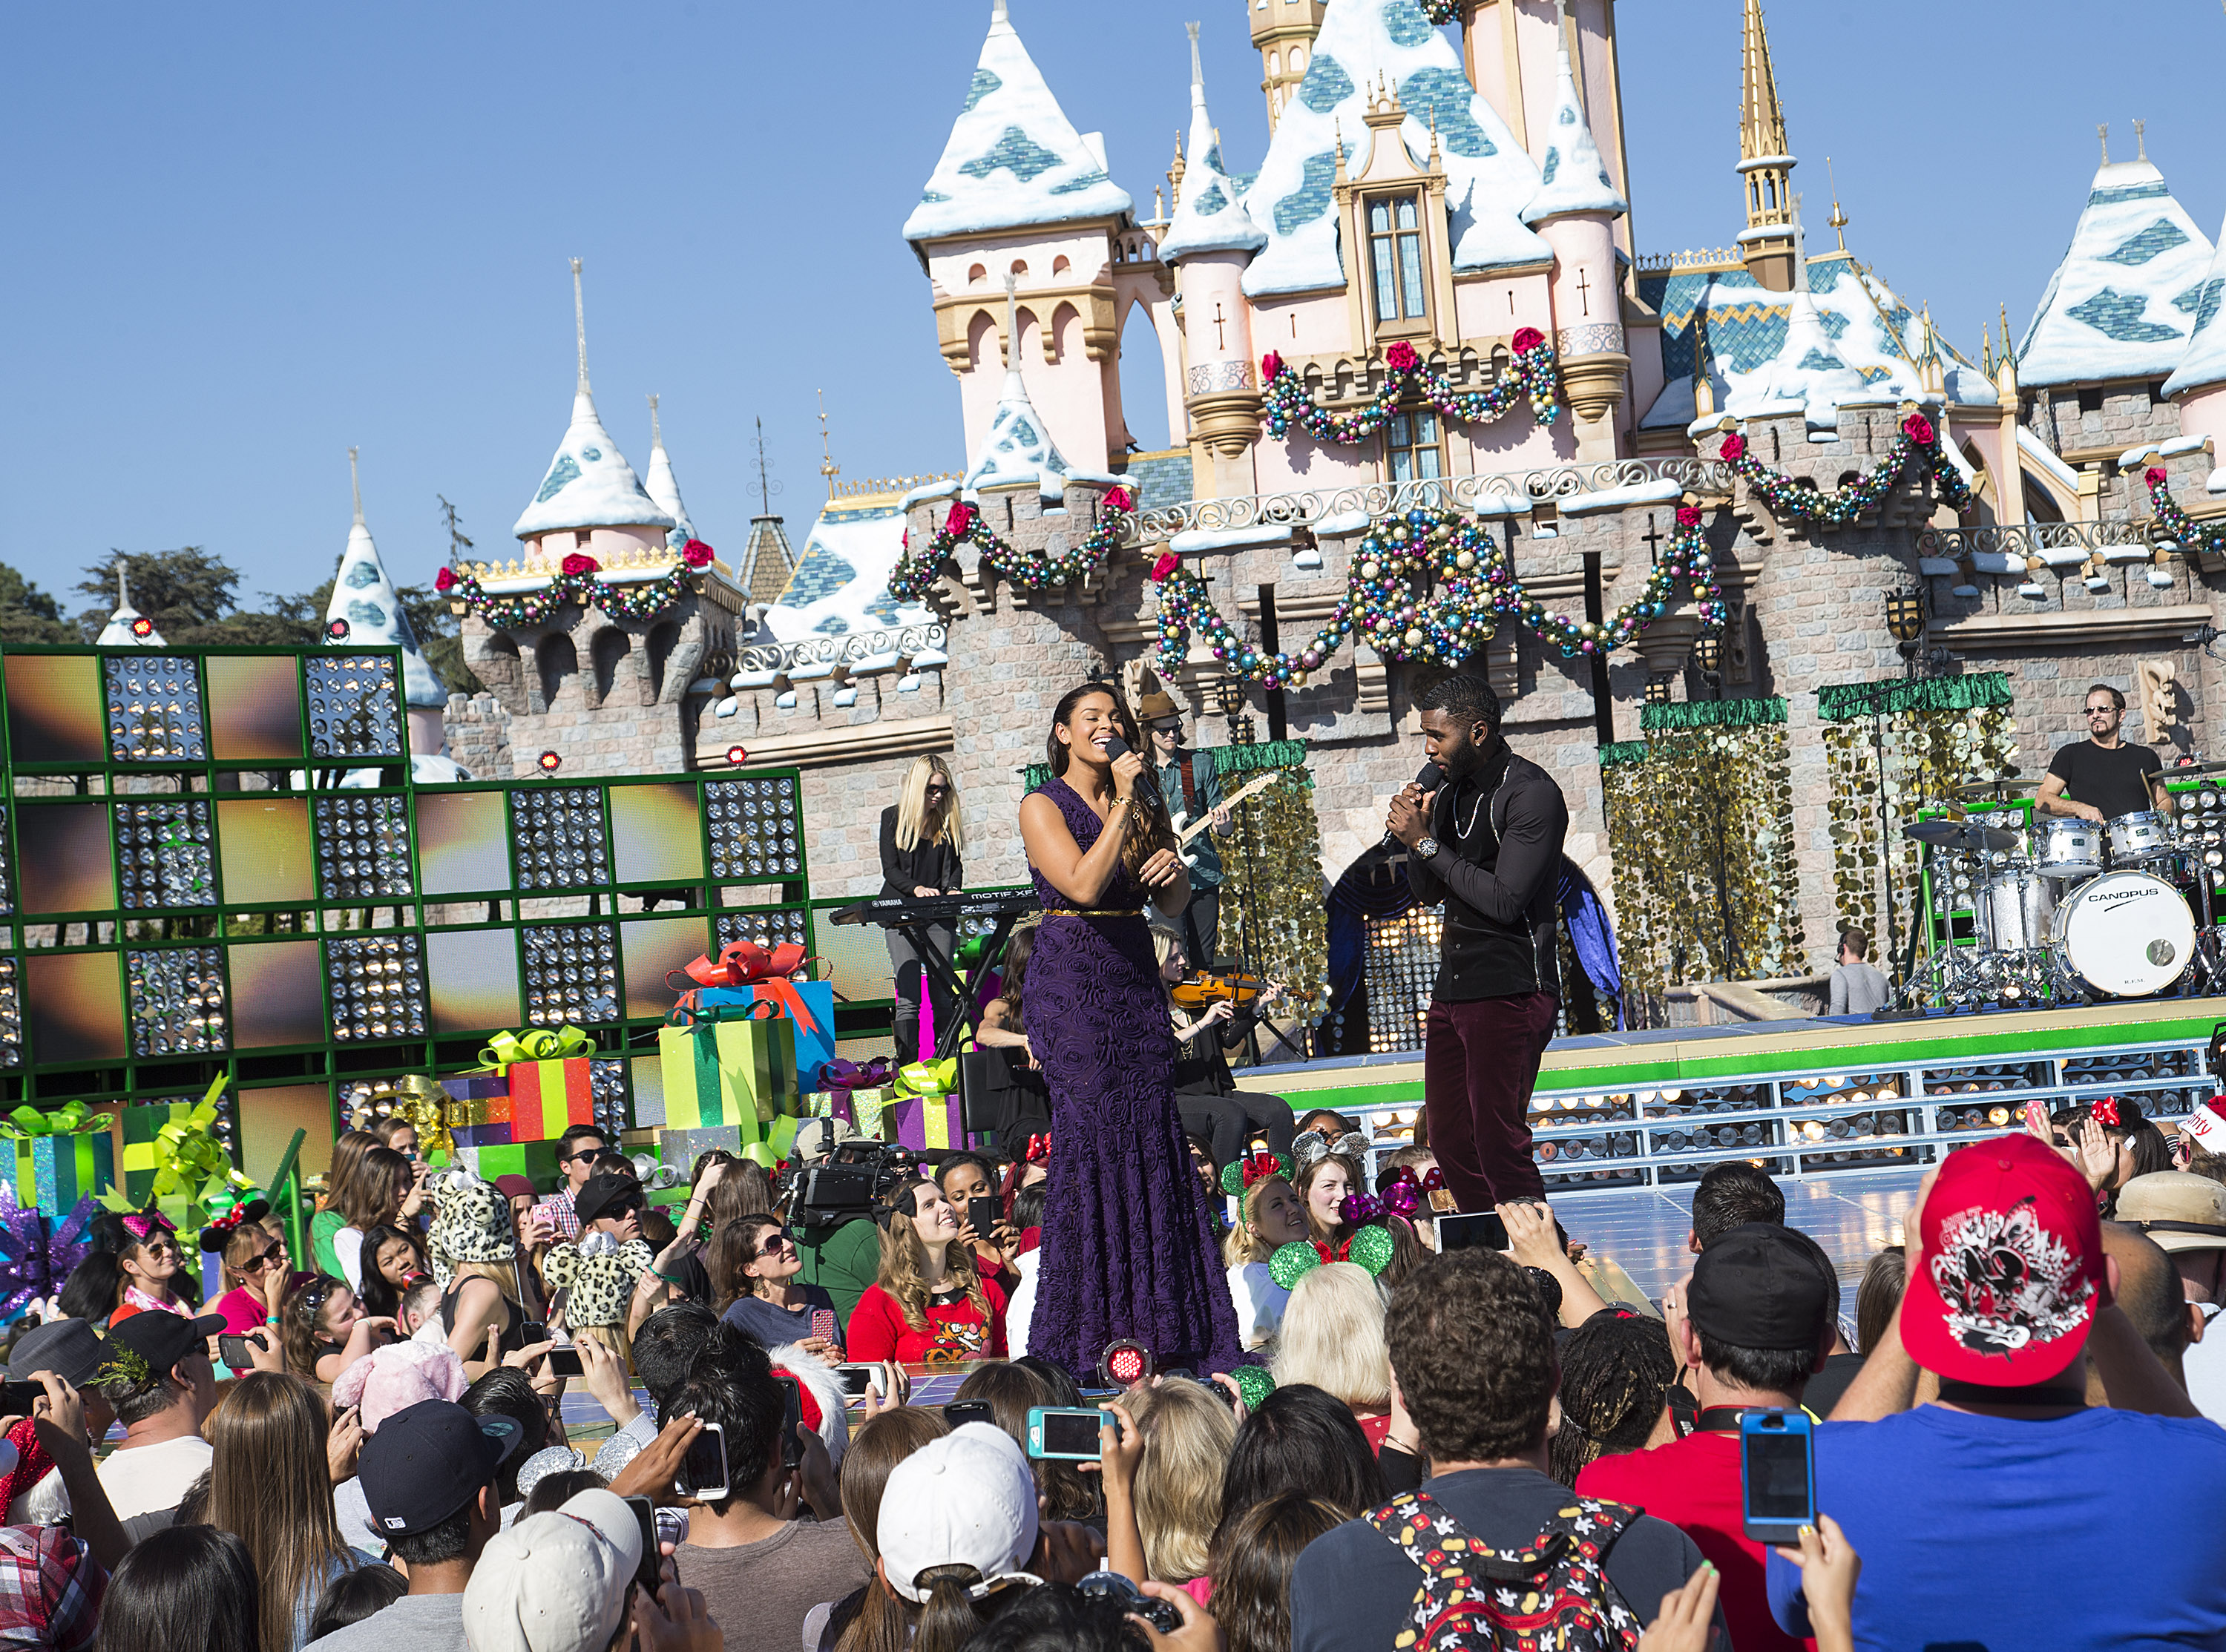 Jordin Sparks and Jason Derulo perform 'Baby It's Cold Outside' during a taping for the 'Disney Parks Christmas Day Parade' television special at Disneyland on November 9, 2013 in Anahiem, California. (Photo by Paul Hiffmeyer/Disney Parks via Getty Images)